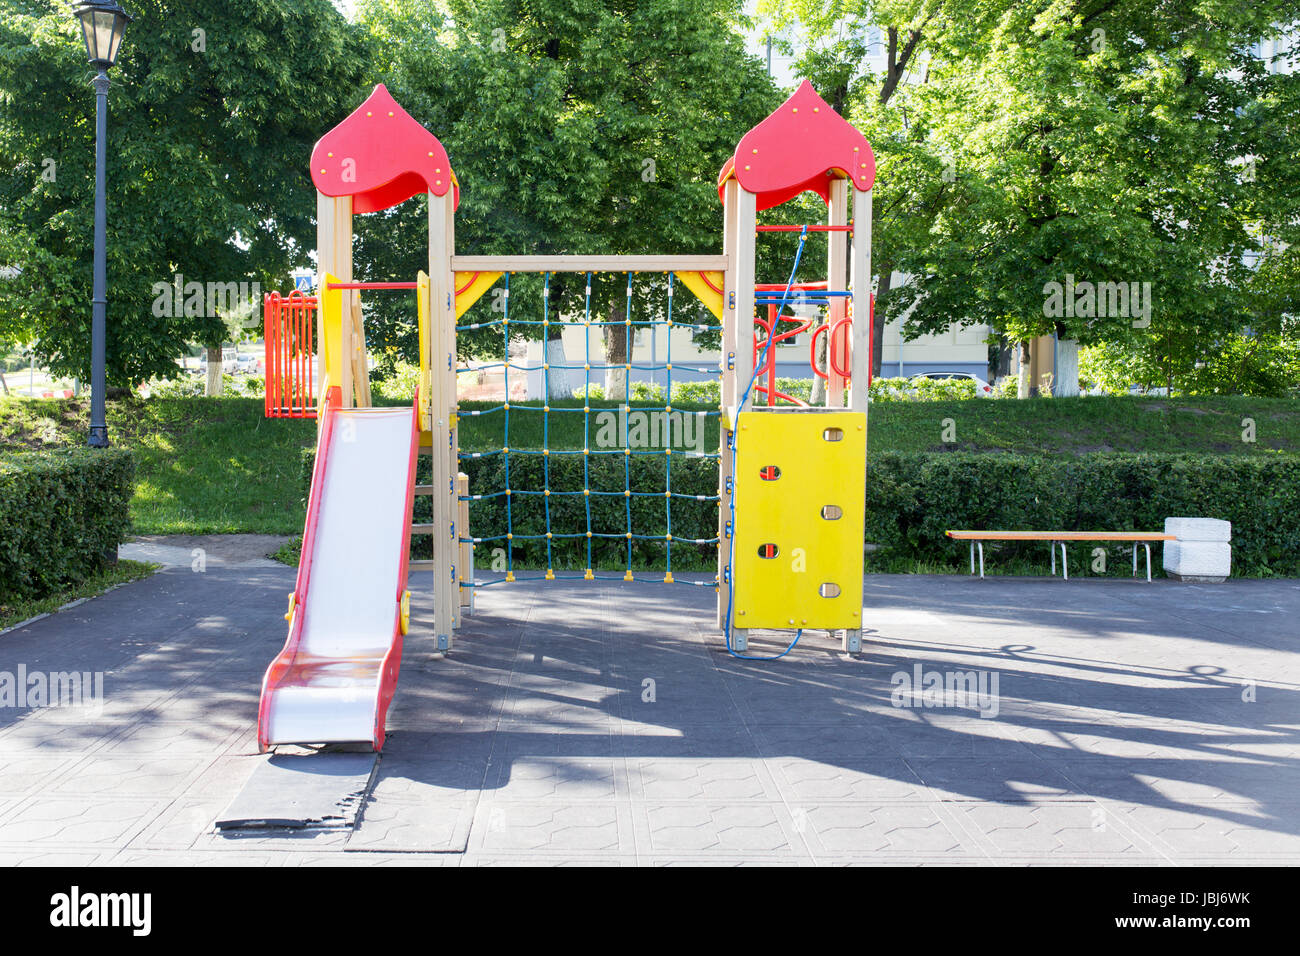 Modern Playground Equipment. Modern Colorful kids playground on yard in the park. image for background of playground, - Stock Image